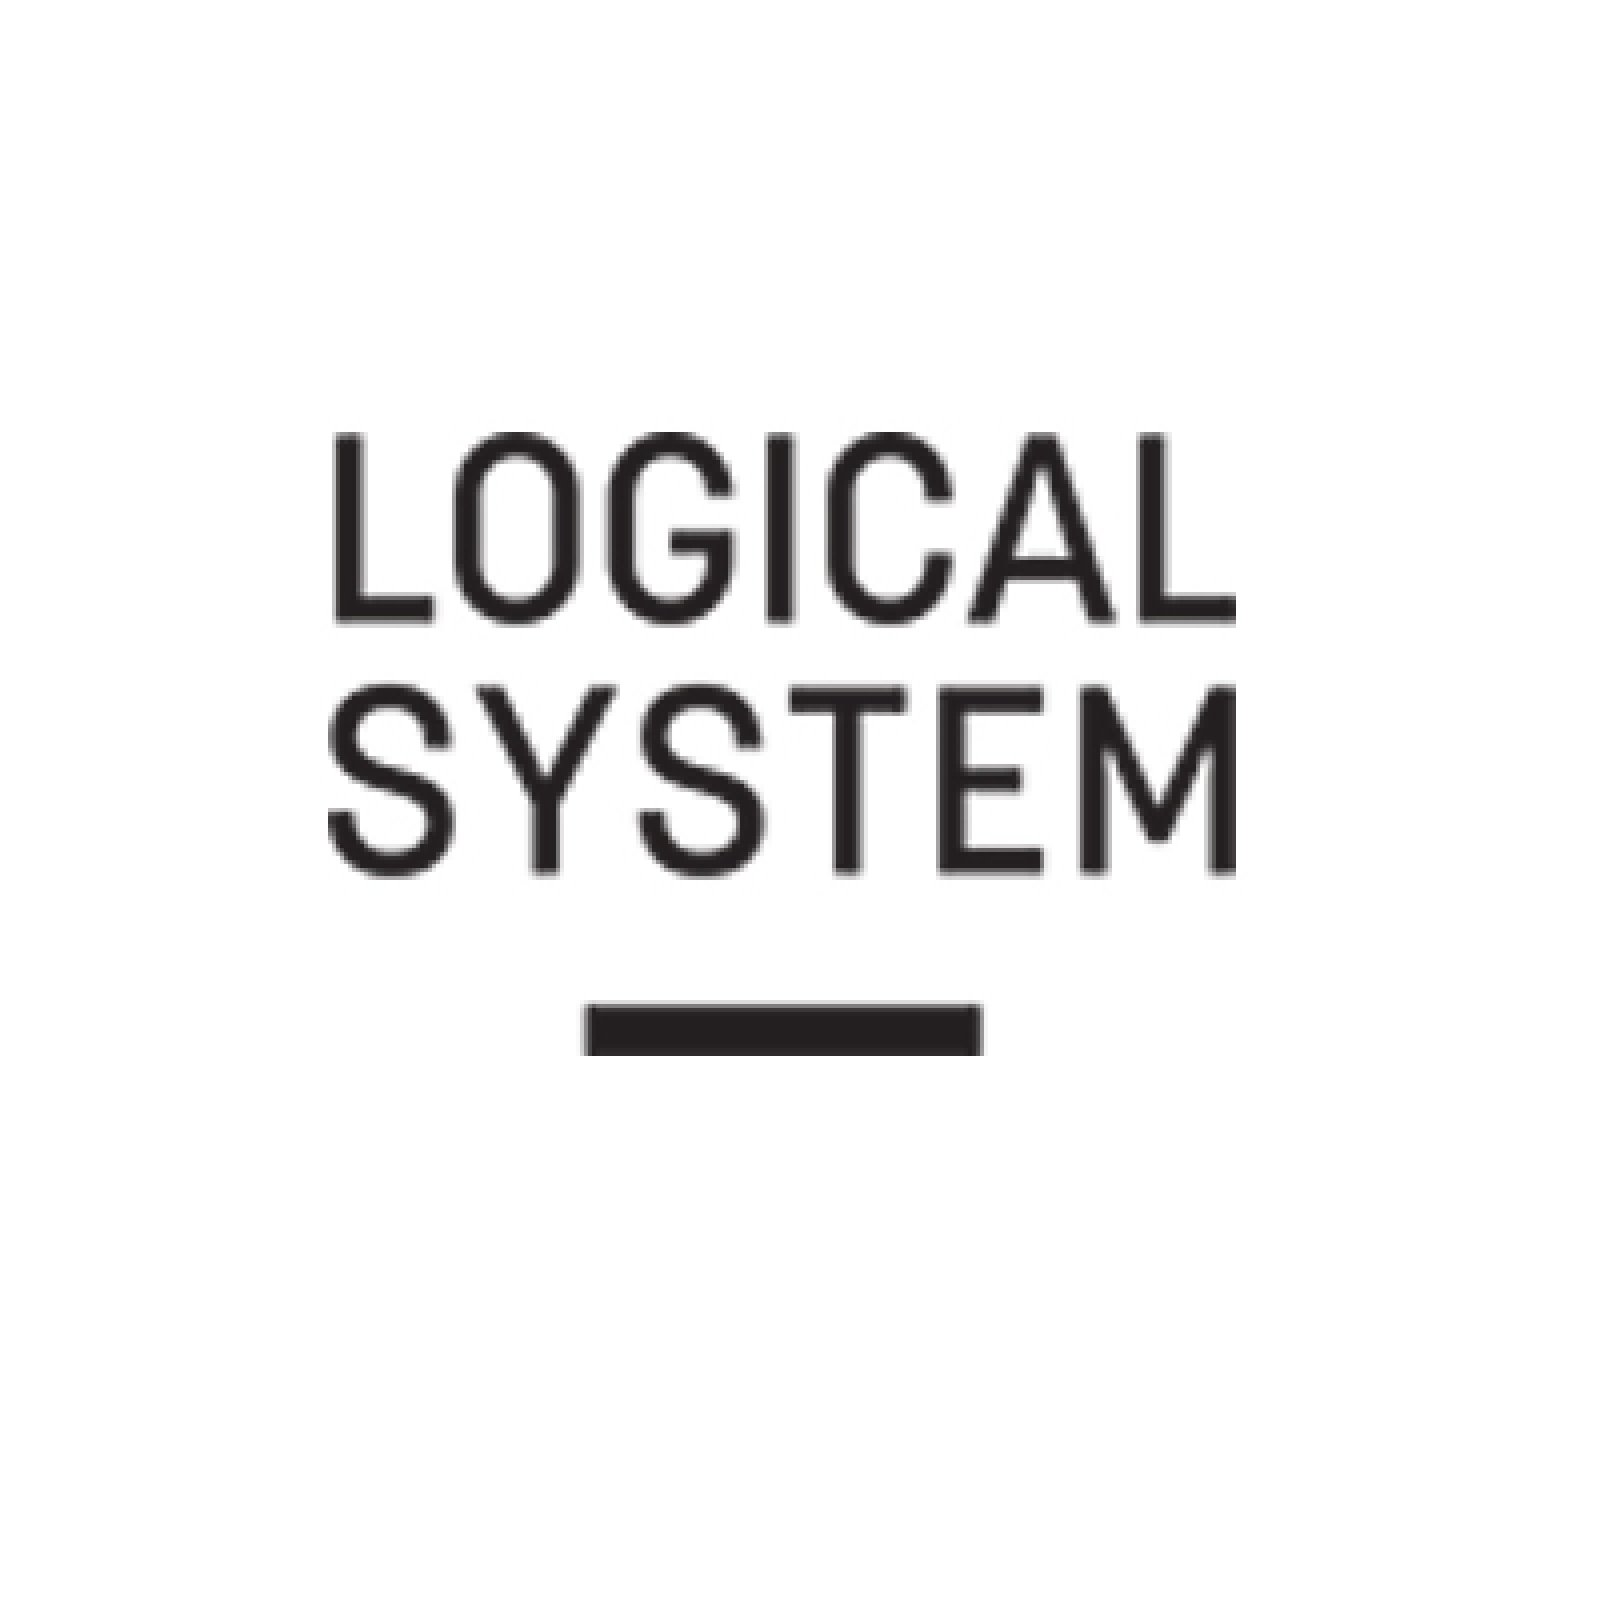 Logo LOGICAL SYSTEM